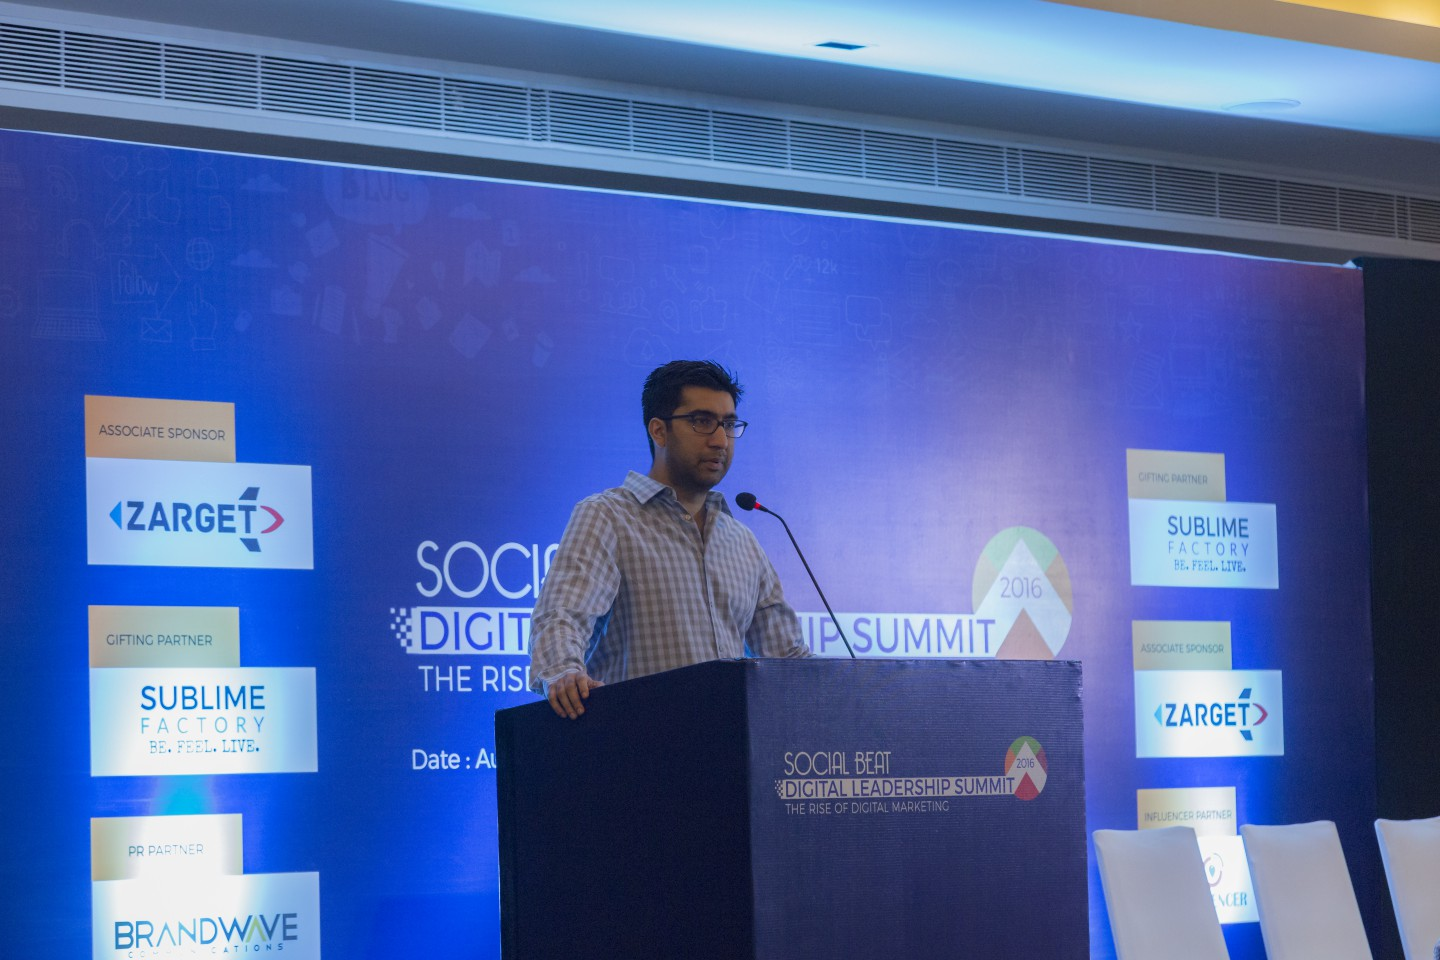 Mithun-Sacheti-Social-Beat-Digital-Leadership-Summit-2016-Chennai